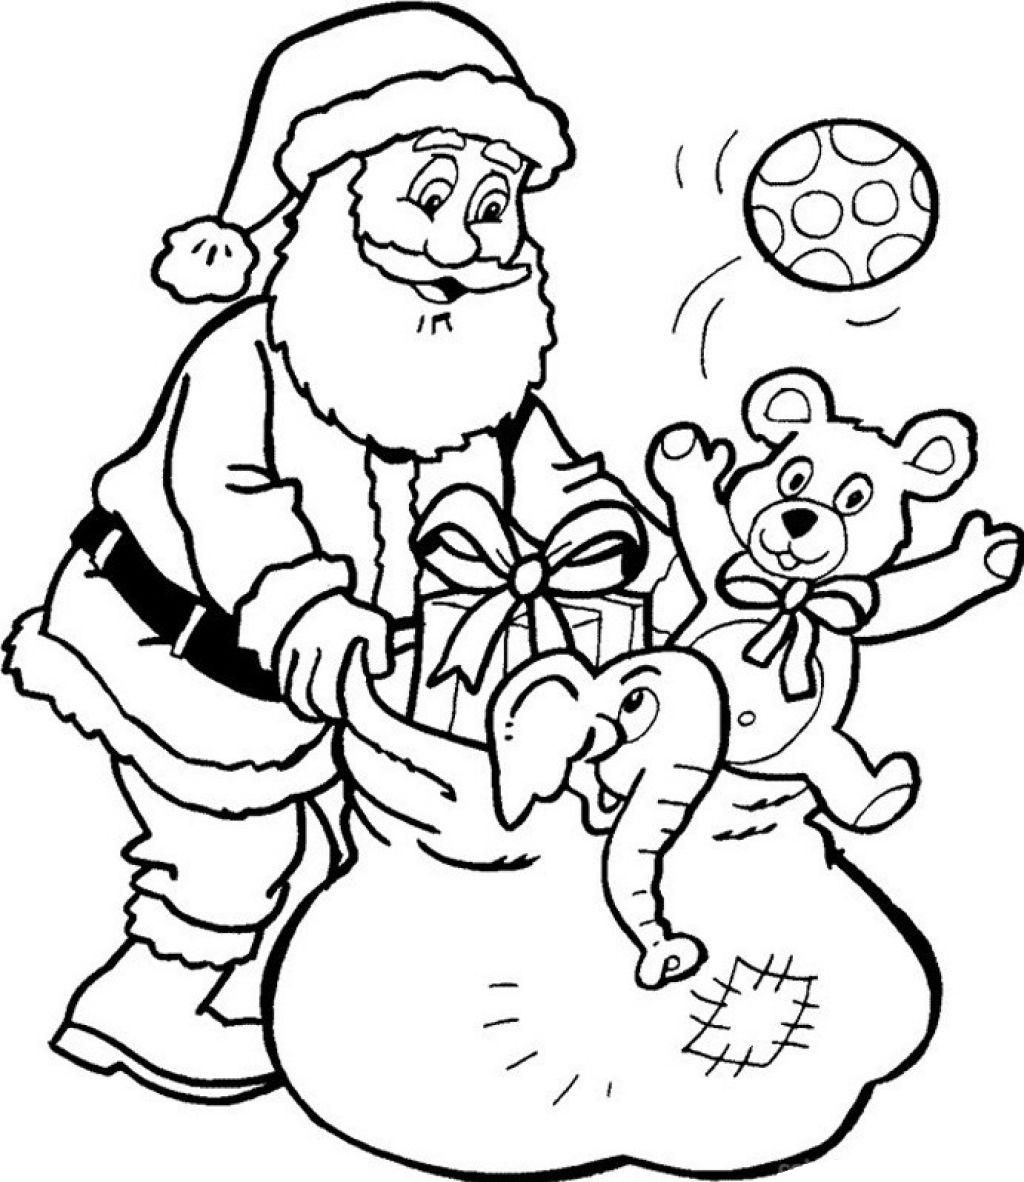 Coloring Rocks Santa Coloring Pages Christmas Tree Coloring Page Printable Christmas Coloring Pages